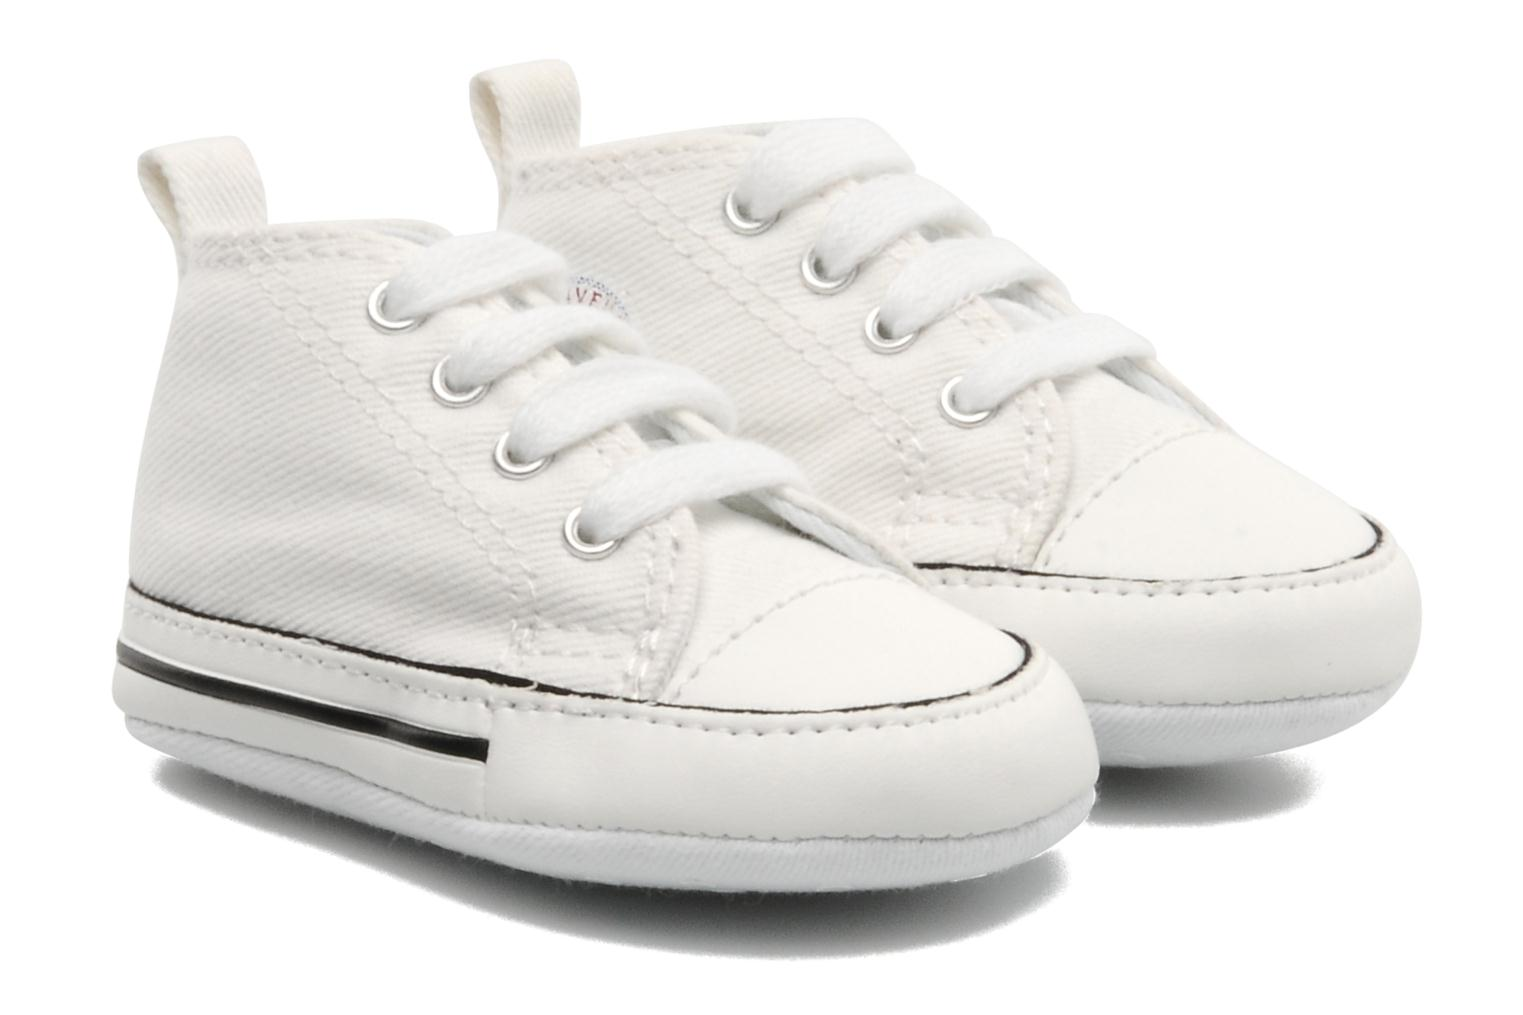 Sneakers First Star Cvs by ConverseConverseWitPaar schoenen - Sneakers2286219109219Textiel